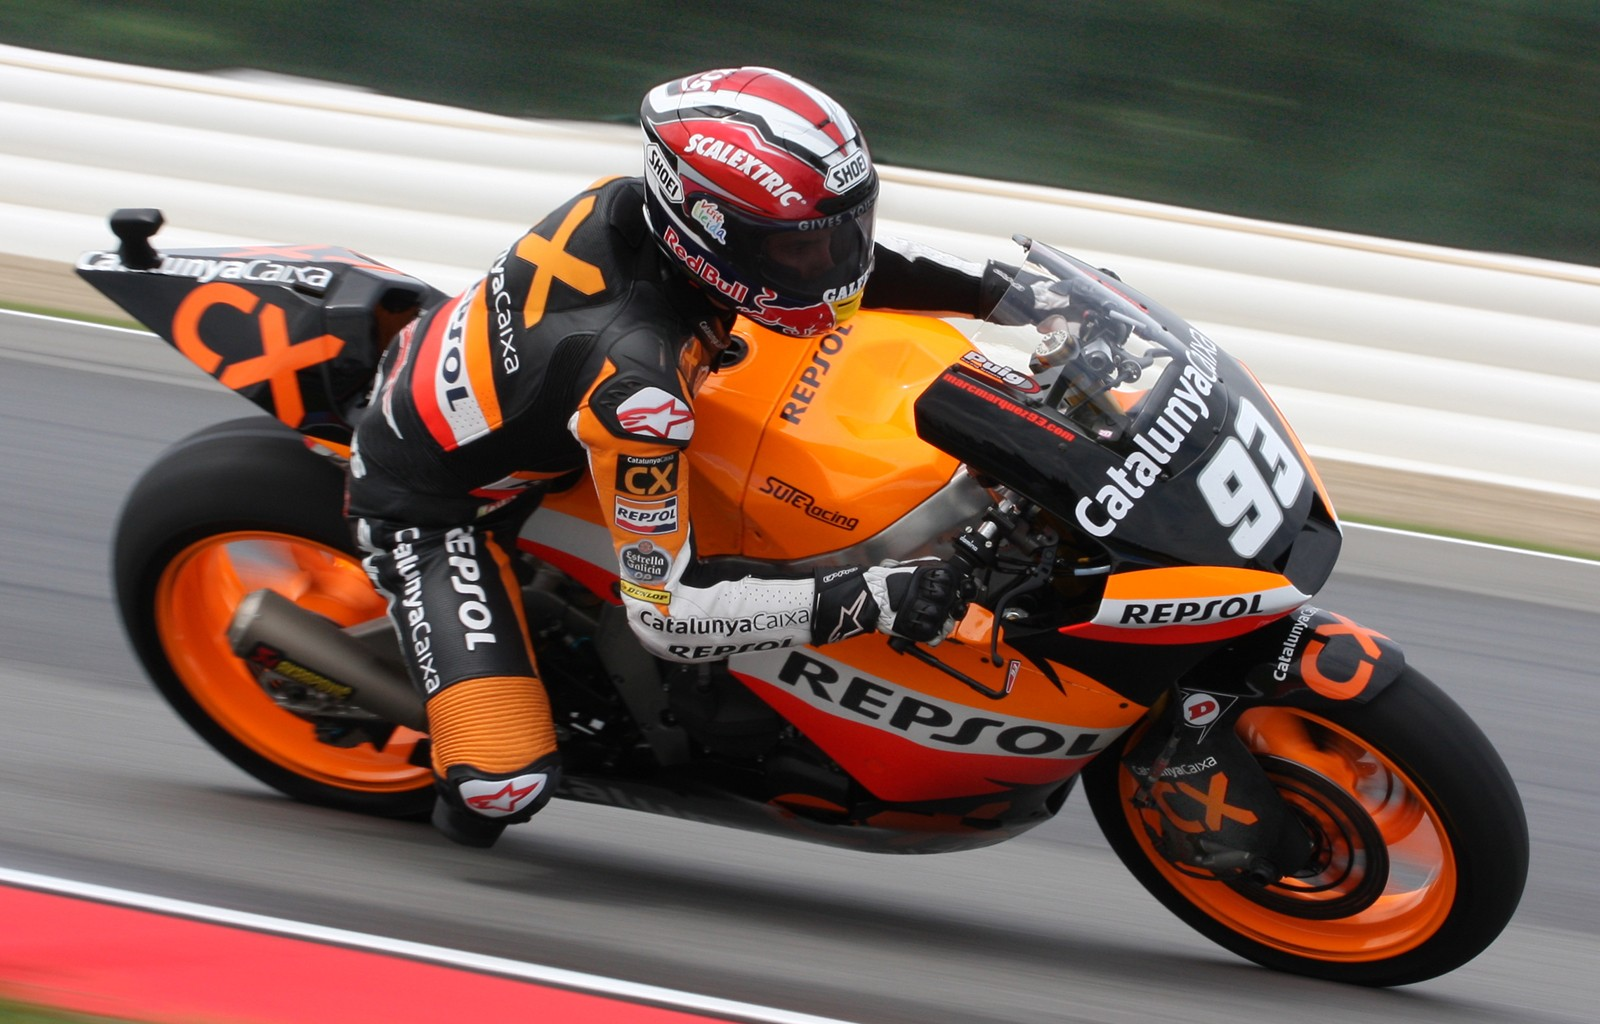 Sports Marc Marquez repsol HD Wallpaper